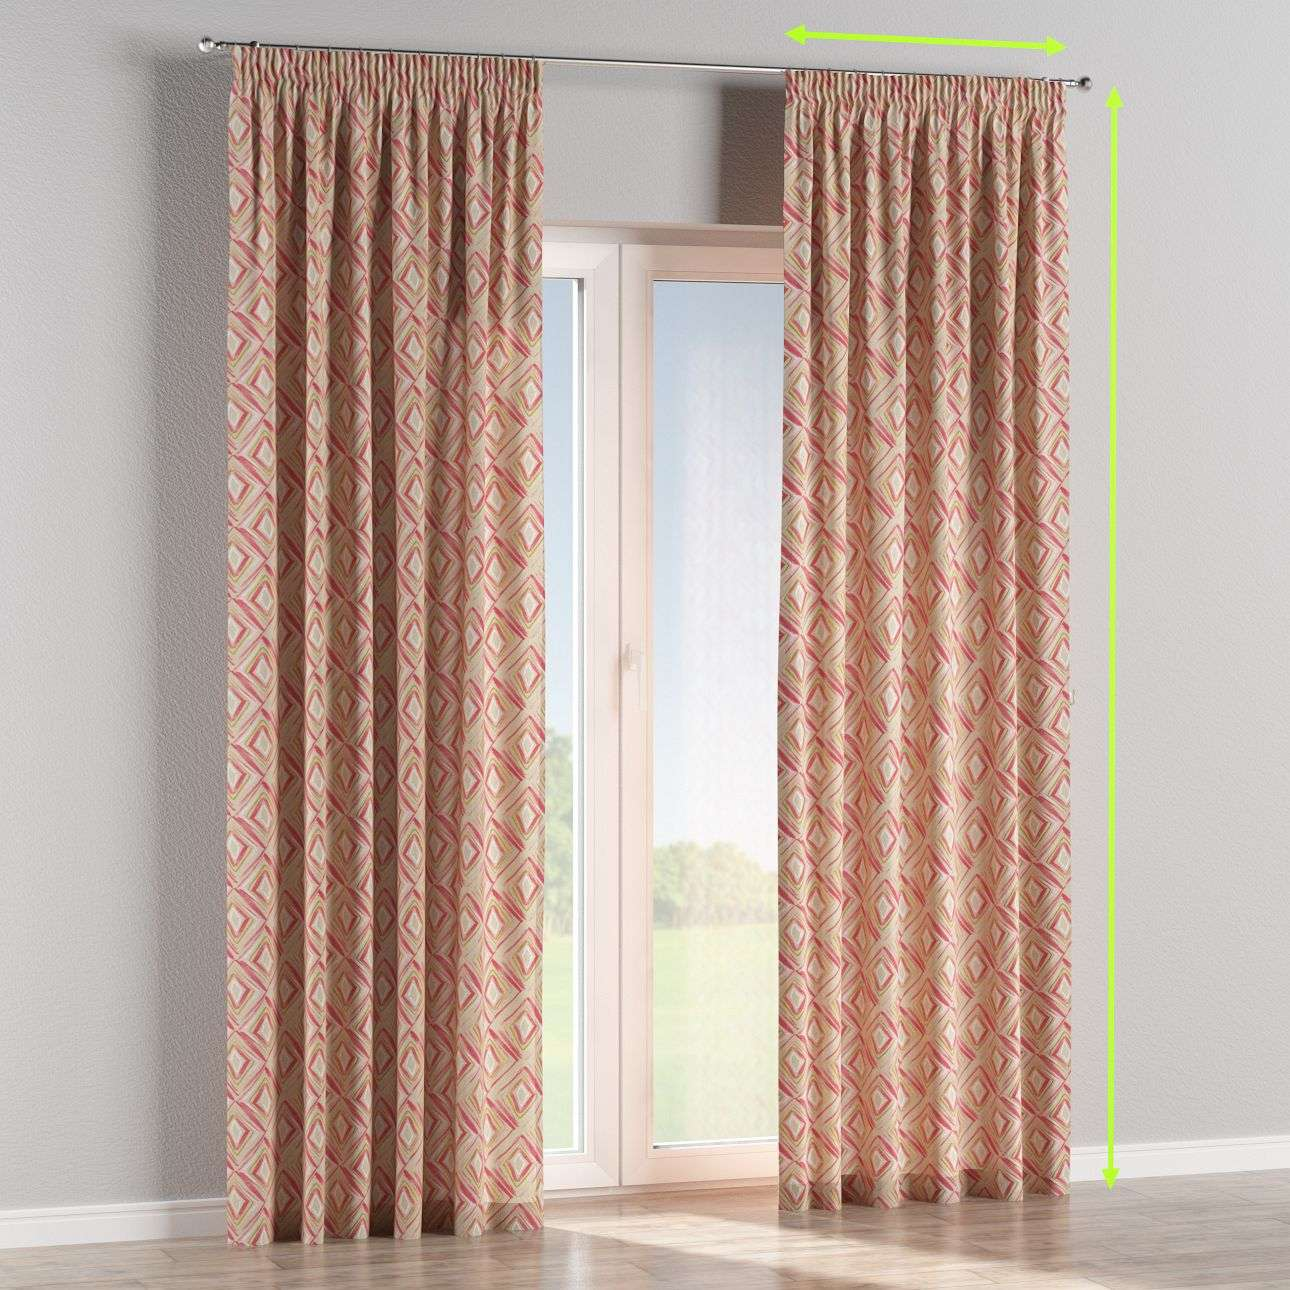 Pencil pleat lined curtains in collection Londres, fabric: 140-45